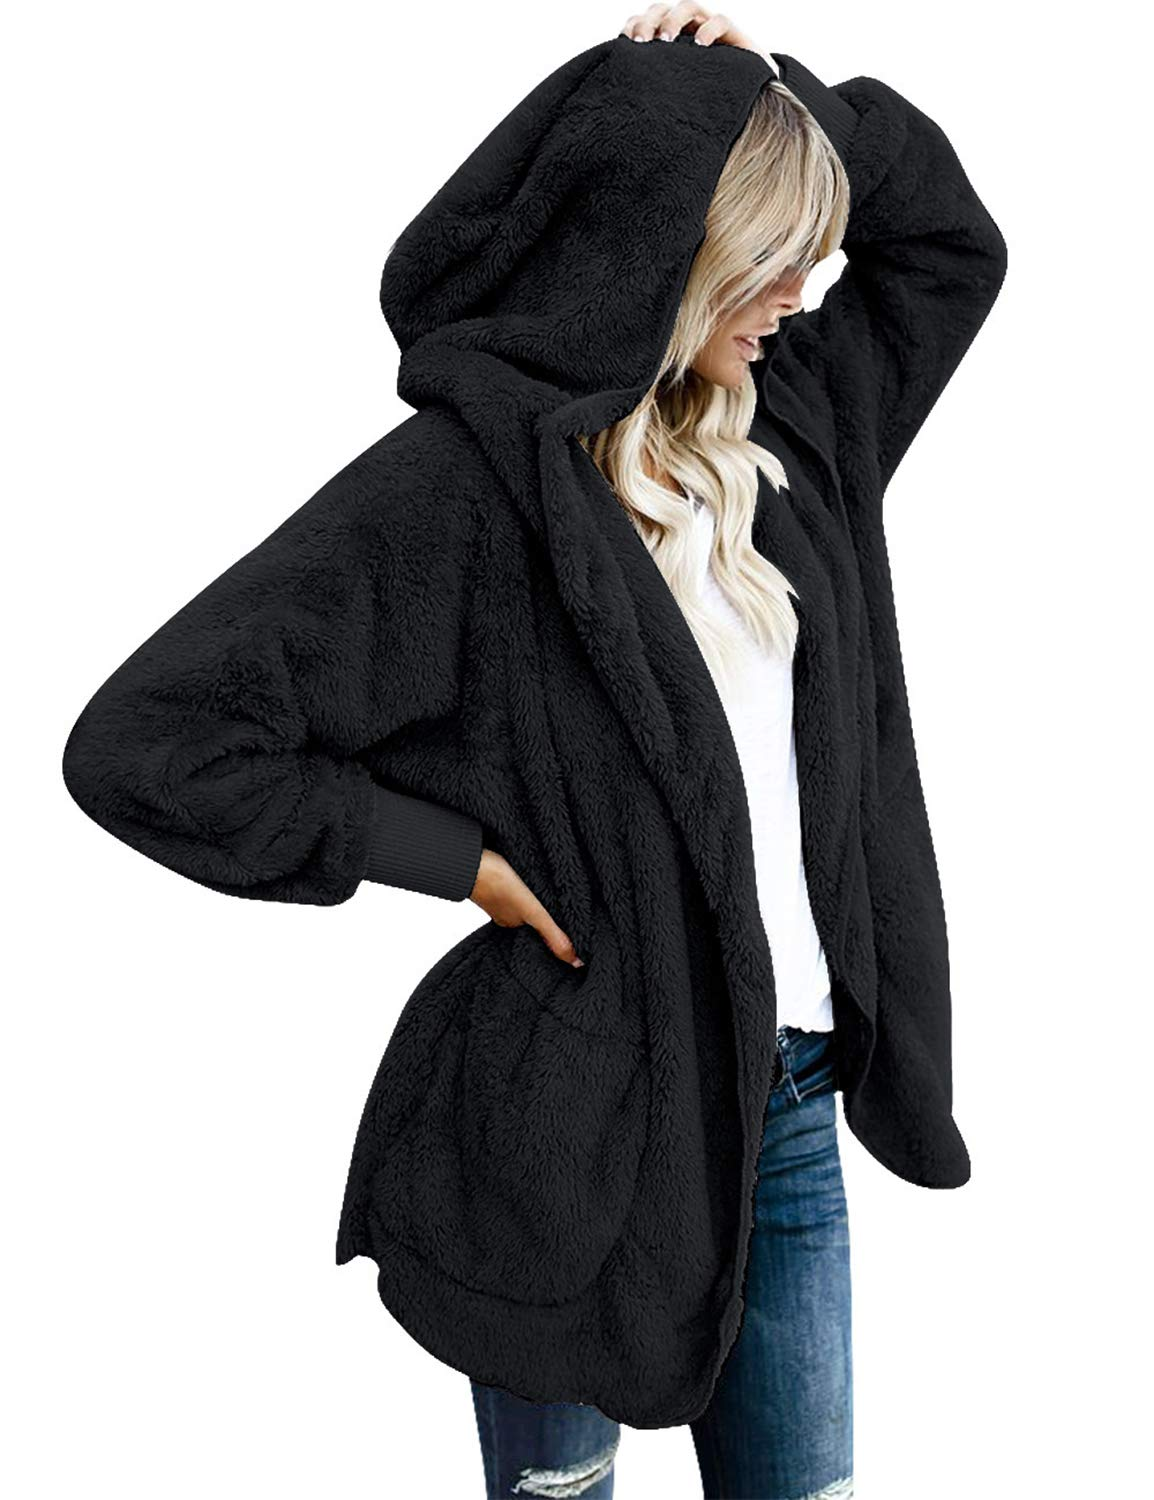 Vetinee Women's Casual Draped Open Front Hooded Cardigan Pockets Oversized Coat Black Size Medium (fits US 8-US 10)